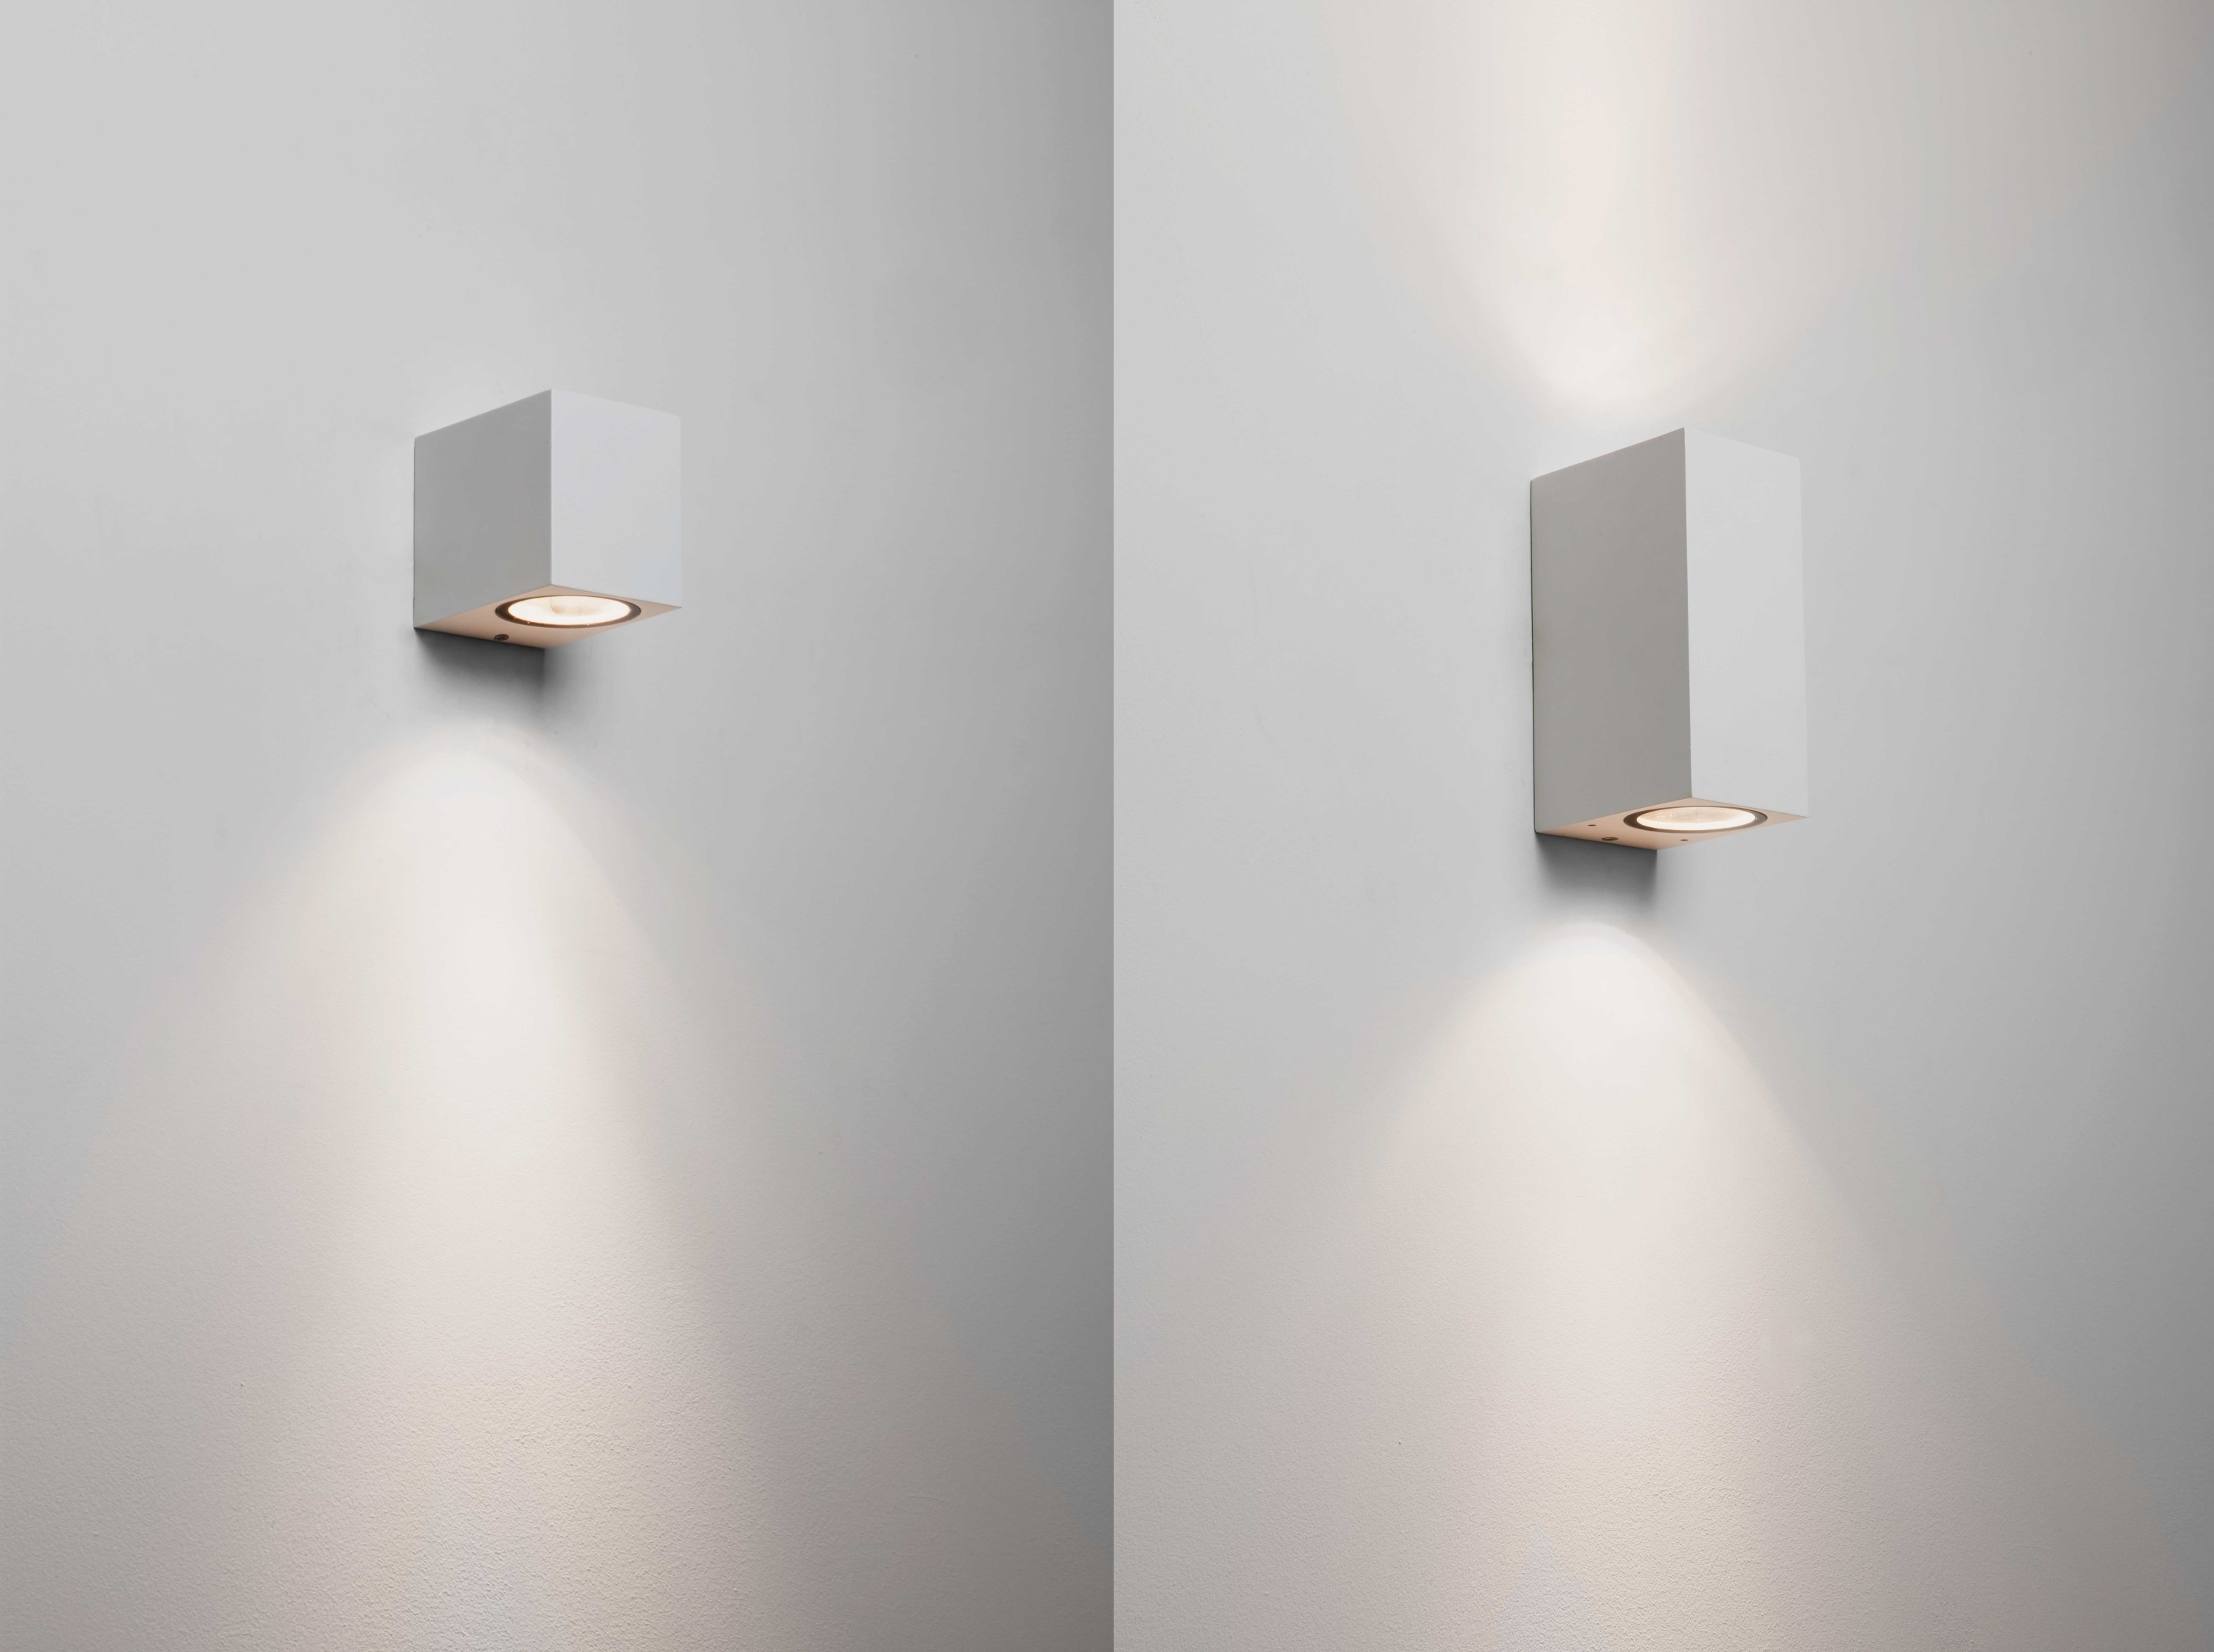 Astro Chios White External Outdoor Wall Lights Up Down Halogen 6W Intended For Outdoor Wall Lights In White (#1 of 15)